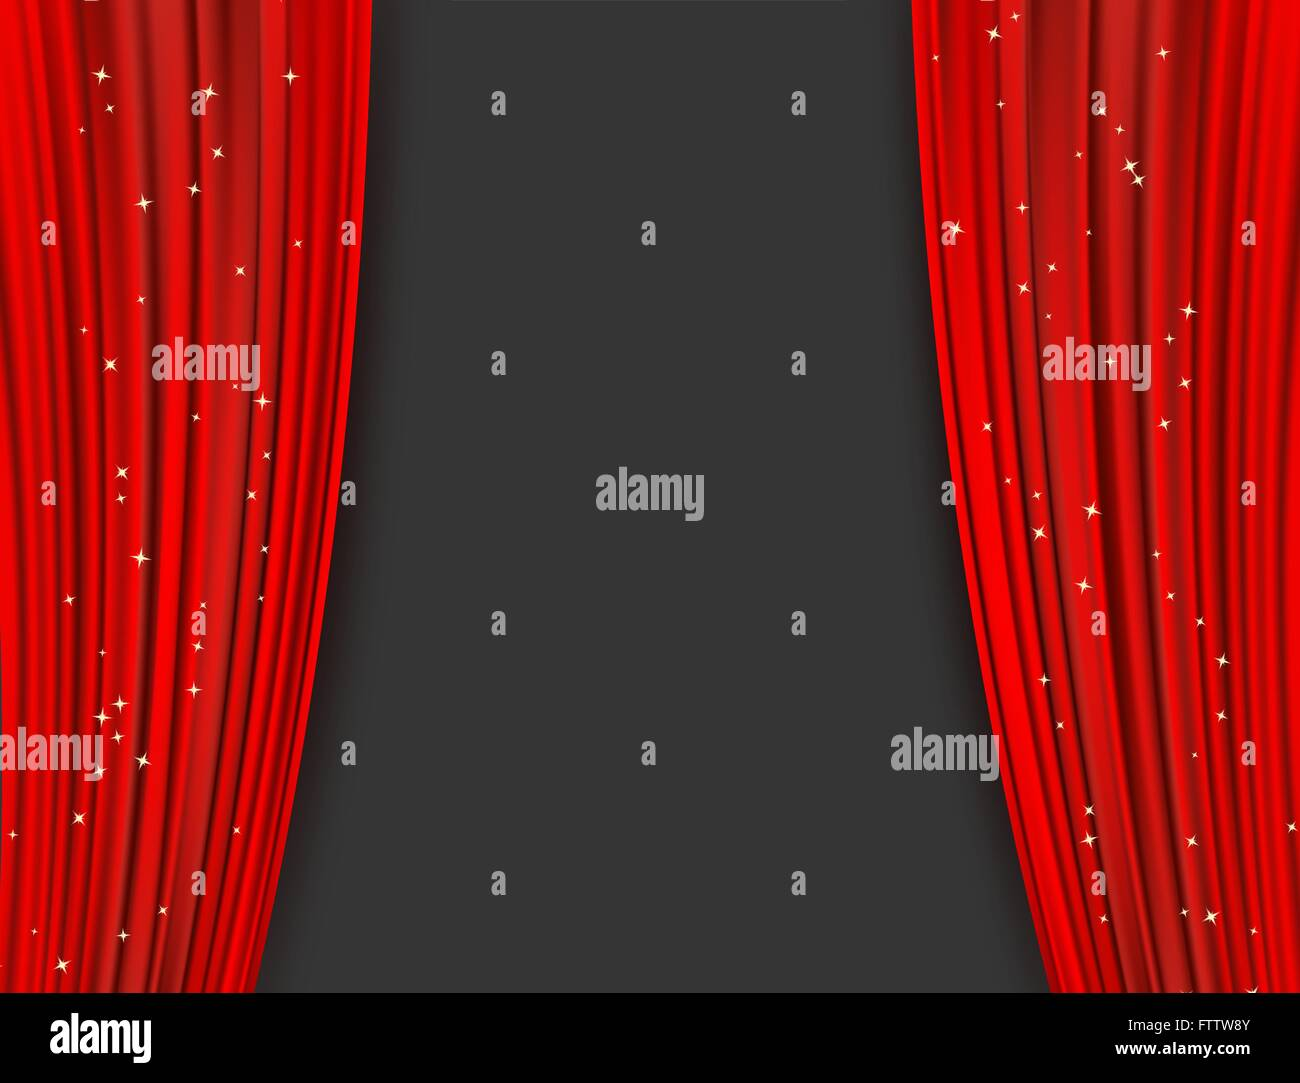 zero to click absolute panels eclipse p tab curtain drapes theater blackout back home expand panel